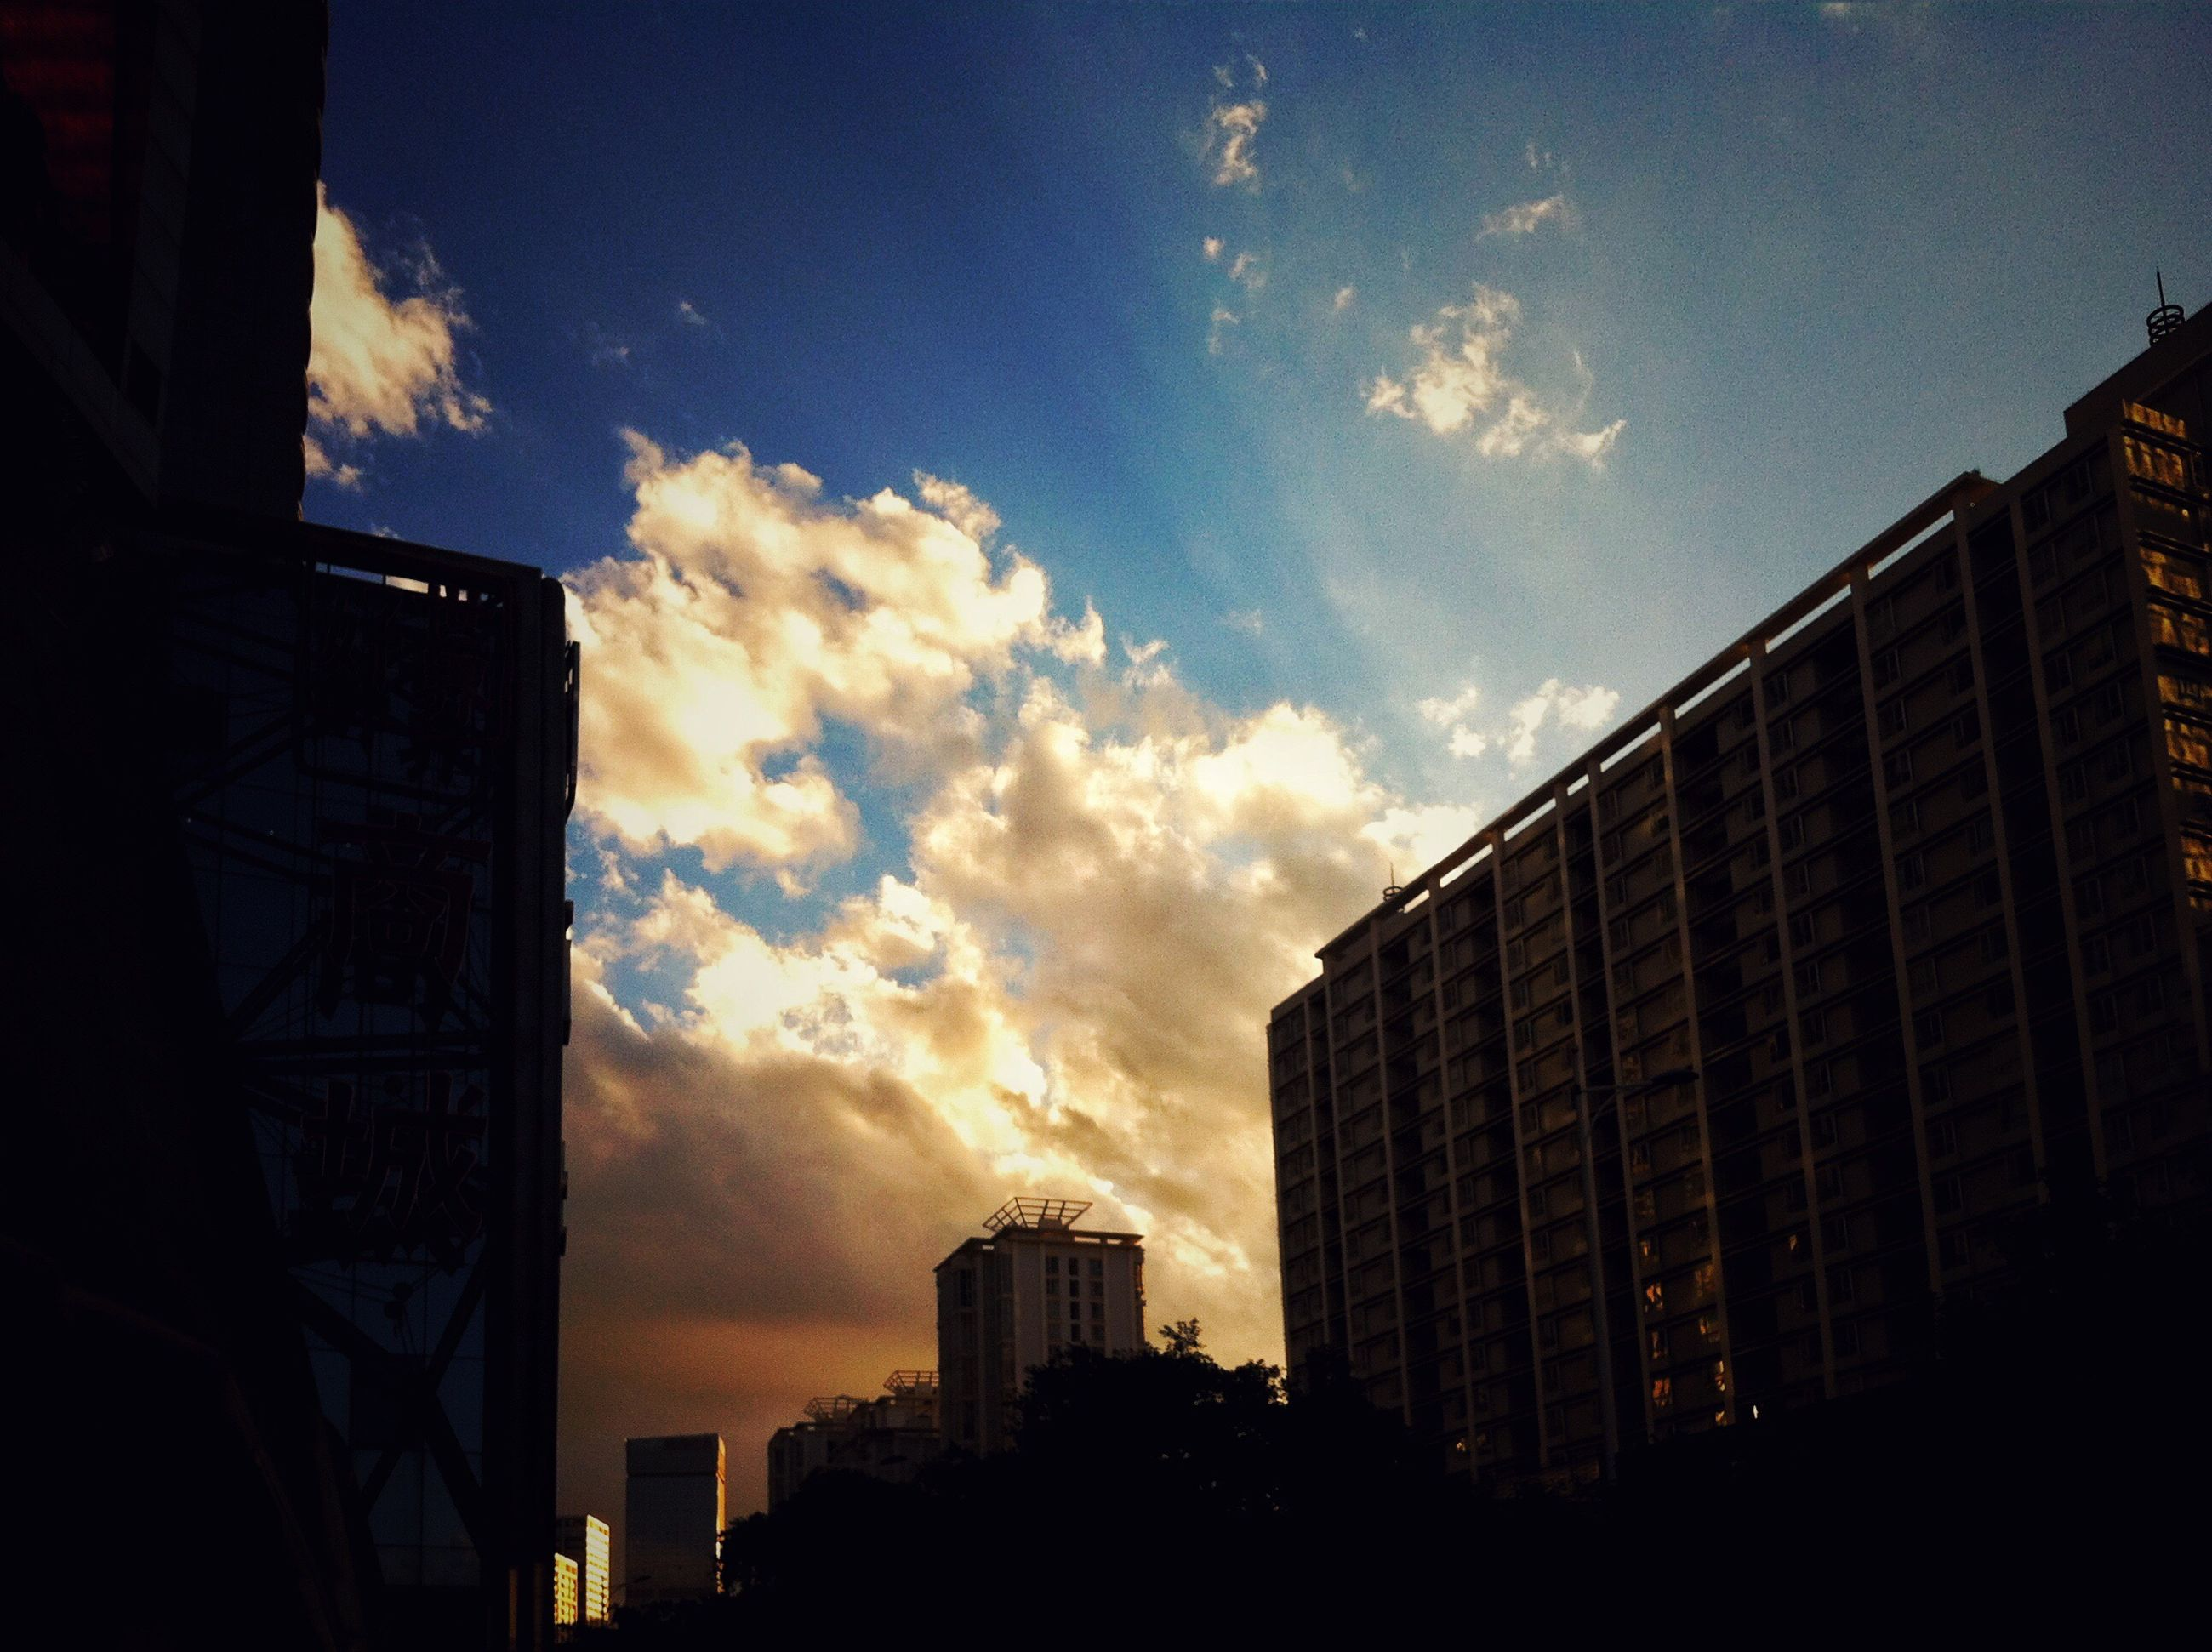 building exterior, architecture, built structure, sky, city, silhouette, sunset, cloud - sky, building, low angle view, residential building, skyscraper, cloud, office building, residential structure, dusk, cloudy, city life, outdoors, modern